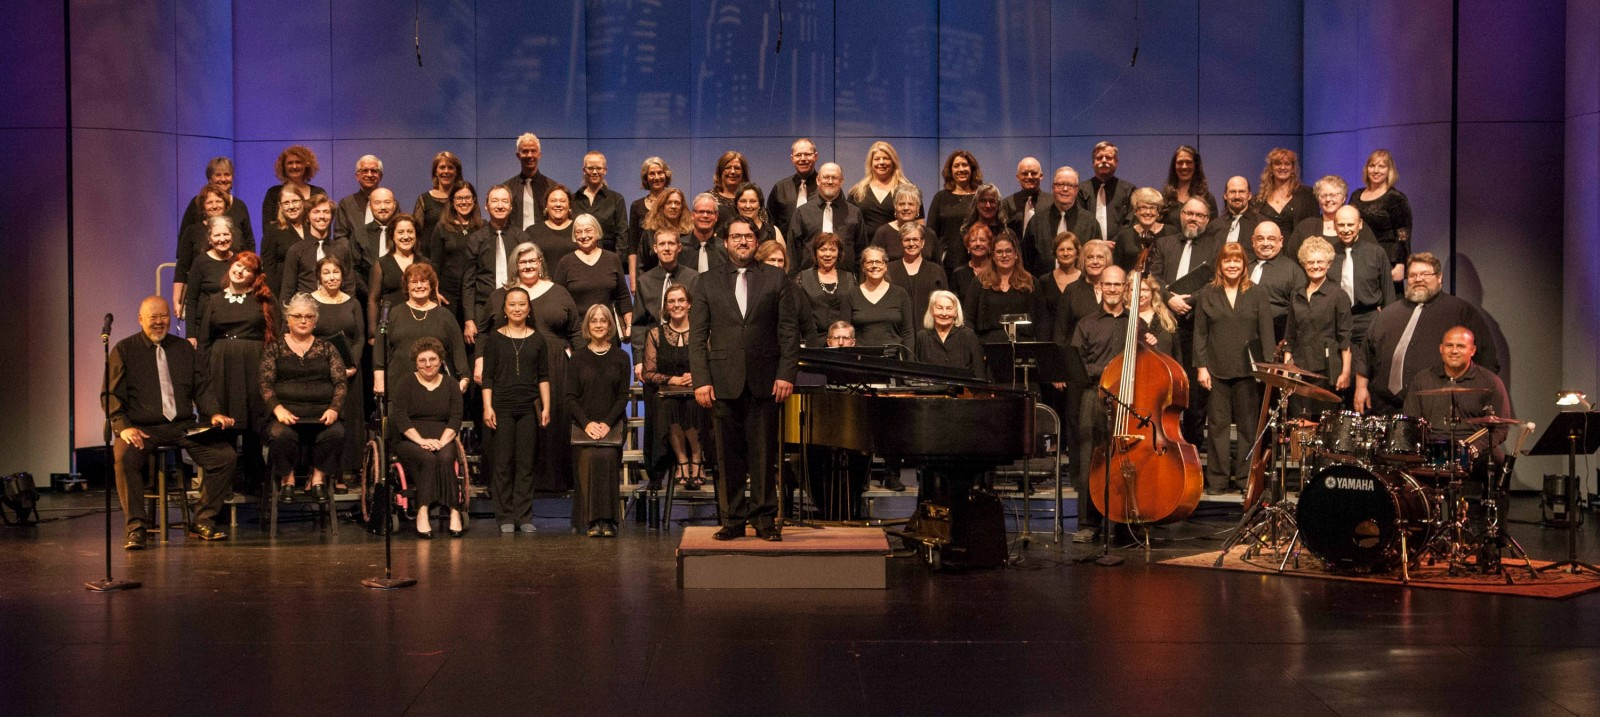 ChoralSounds Northwest. Photo credit: Phototainment